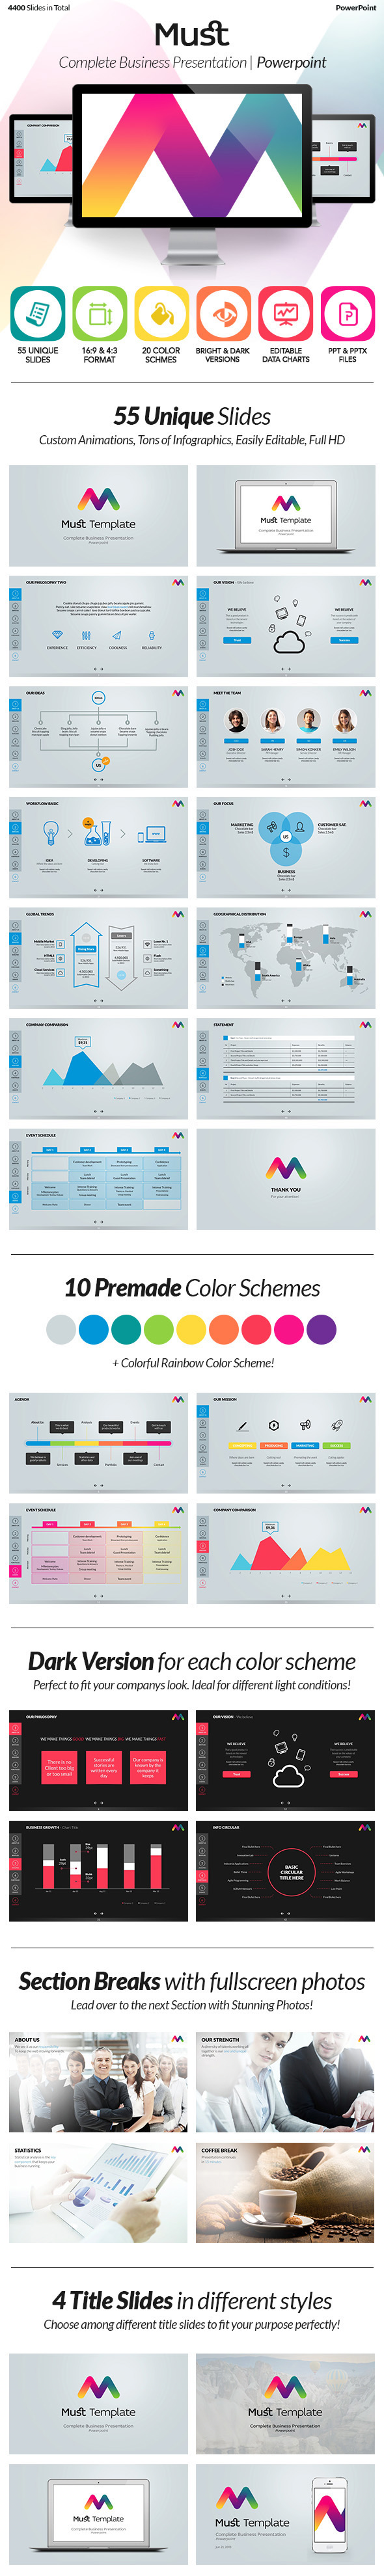 must powerpoint & keynote presentation template on behance, Presentation templates